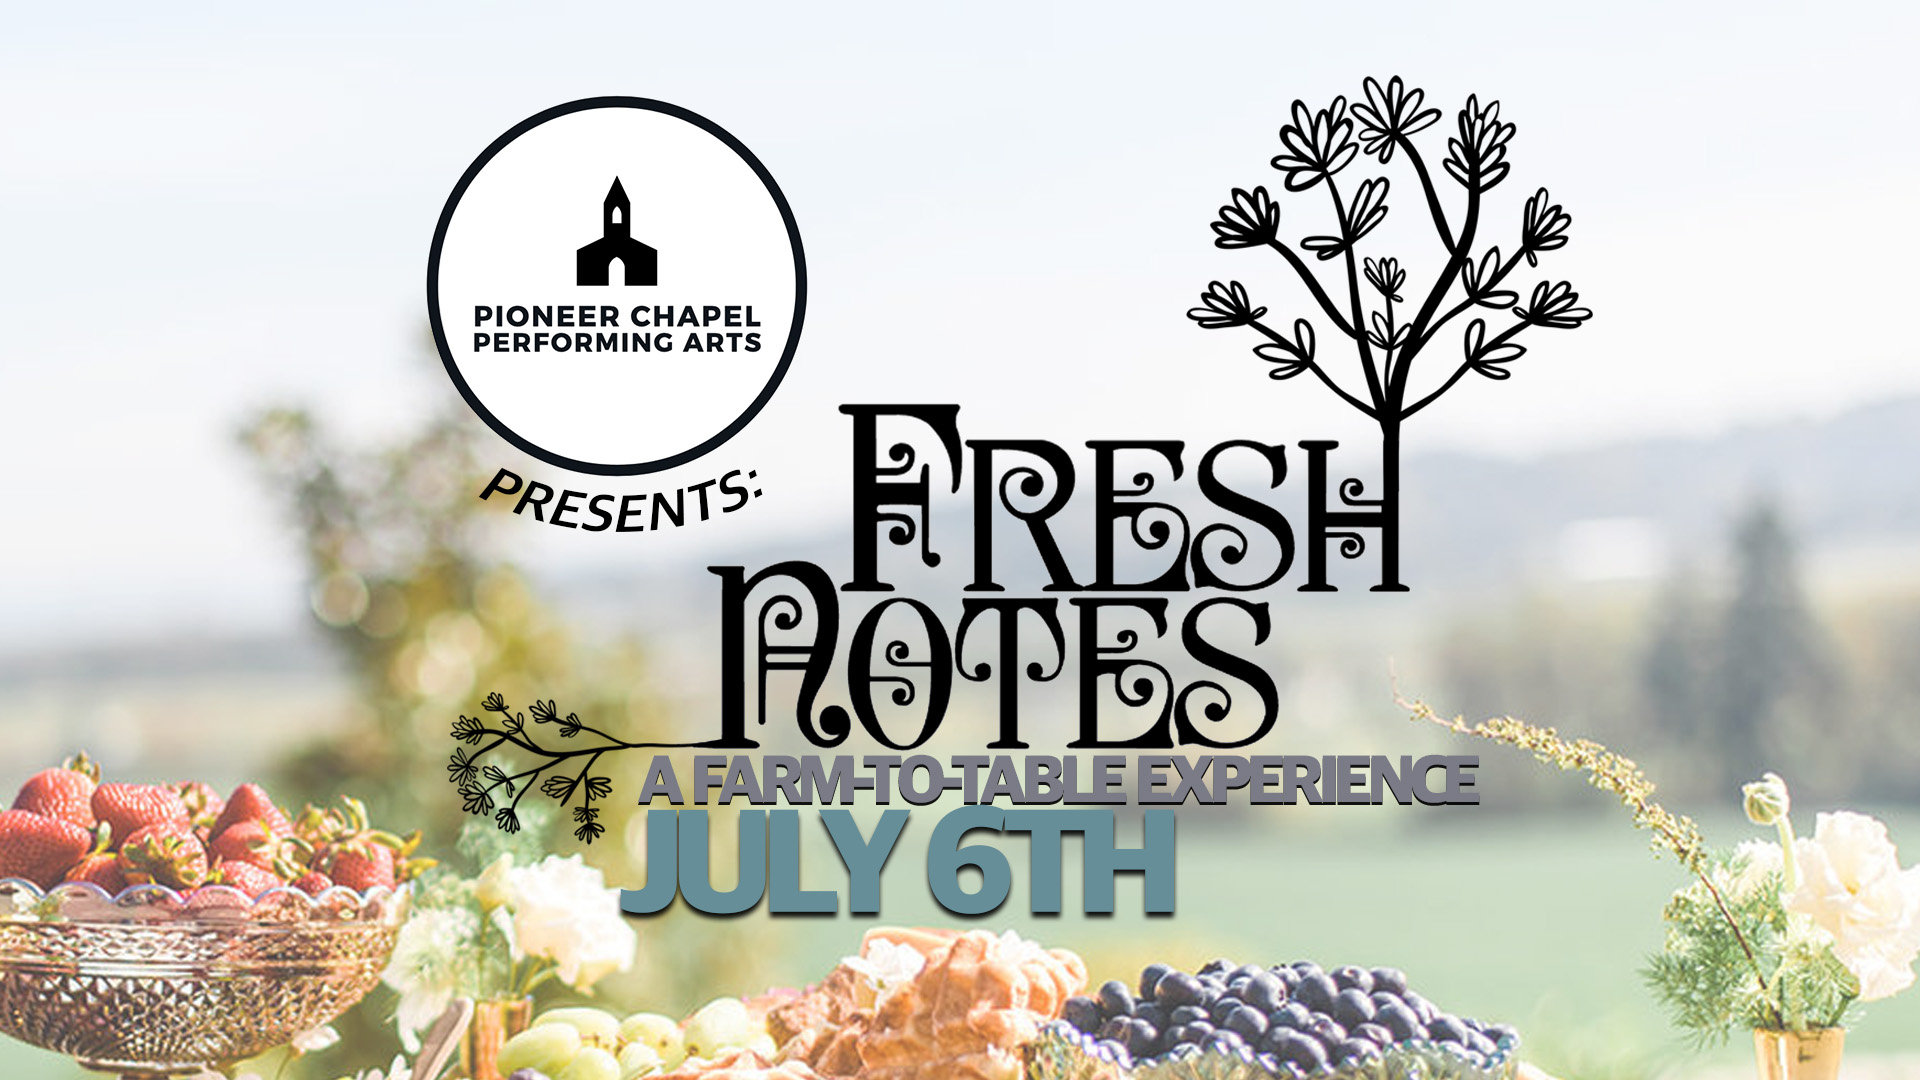 Fresh Notes: A Farm-to-Table Experience | July 6th